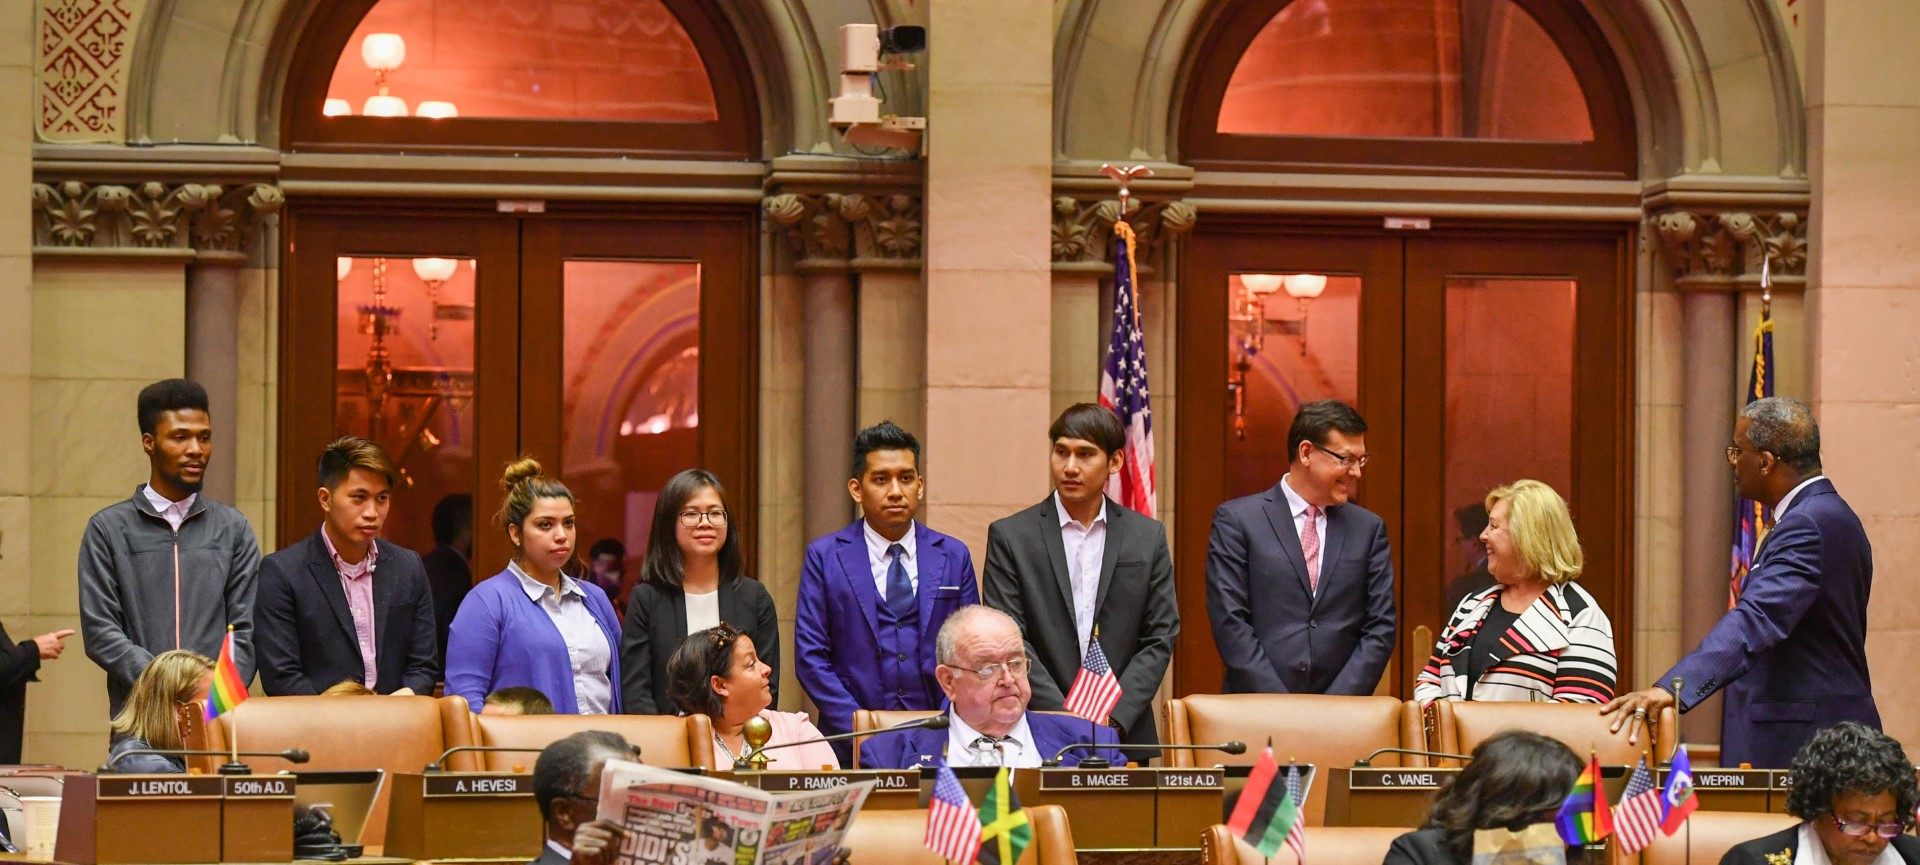 The James Jay Dudley Luce Foundation's Young Global Leaders visited the Captial this week to meet Rebecca and other members of Assembly. They took a tour of the capital and were shown around by our Albany Staff.  The Foundation is based out of Roosevelt Island.